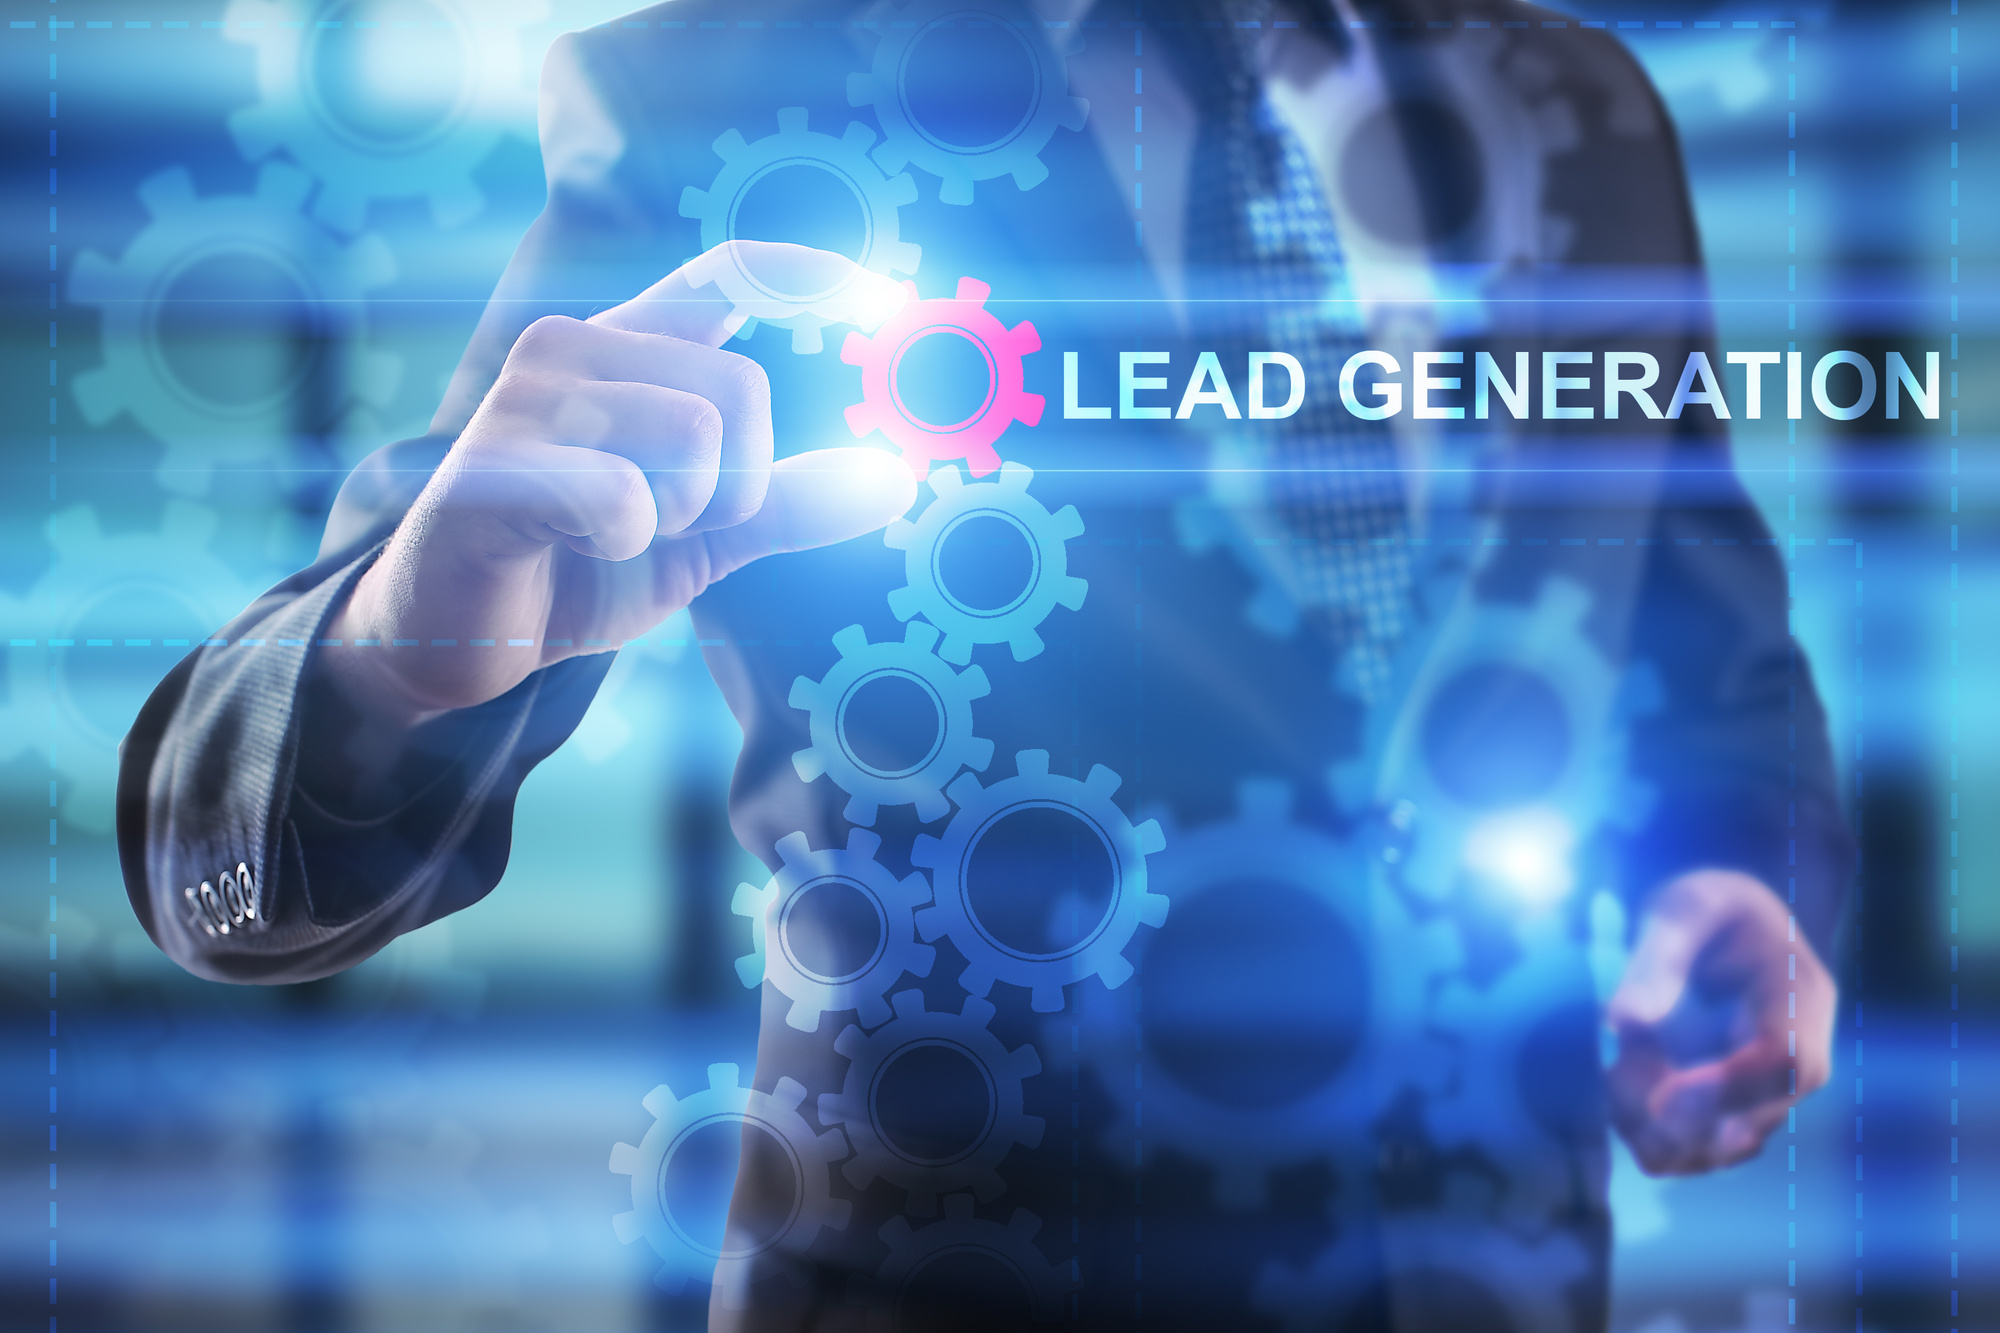 lead generation ideas